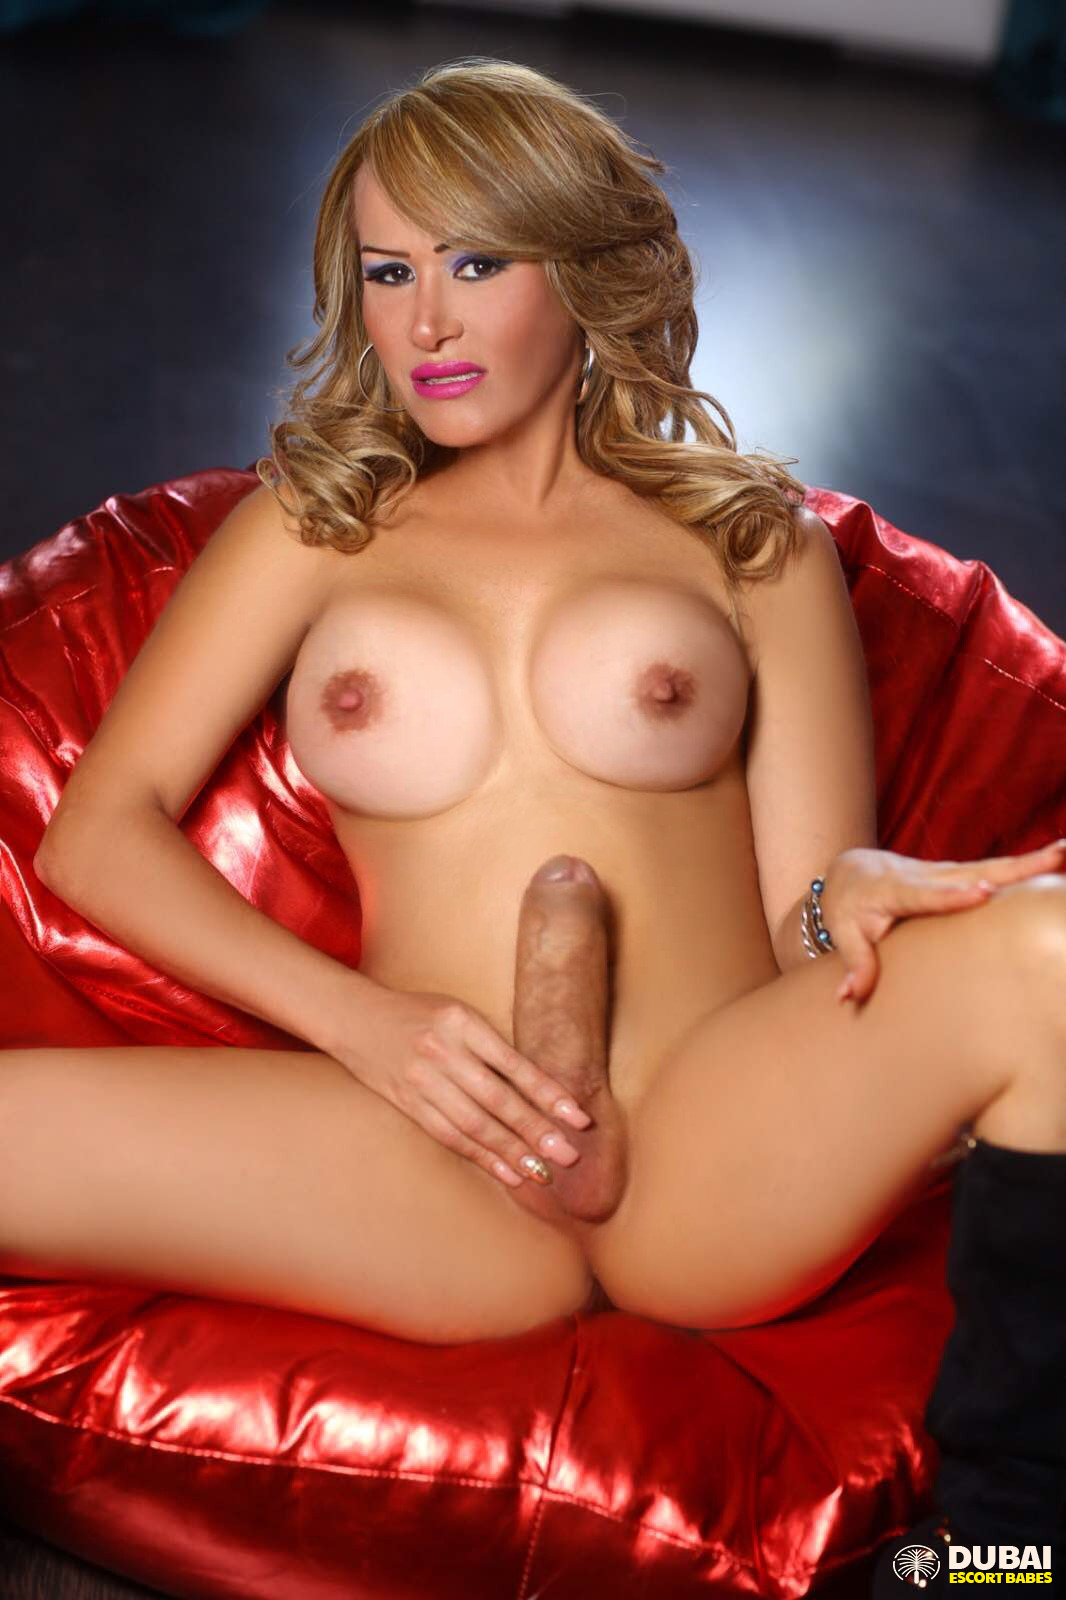 gratis porno escort paris